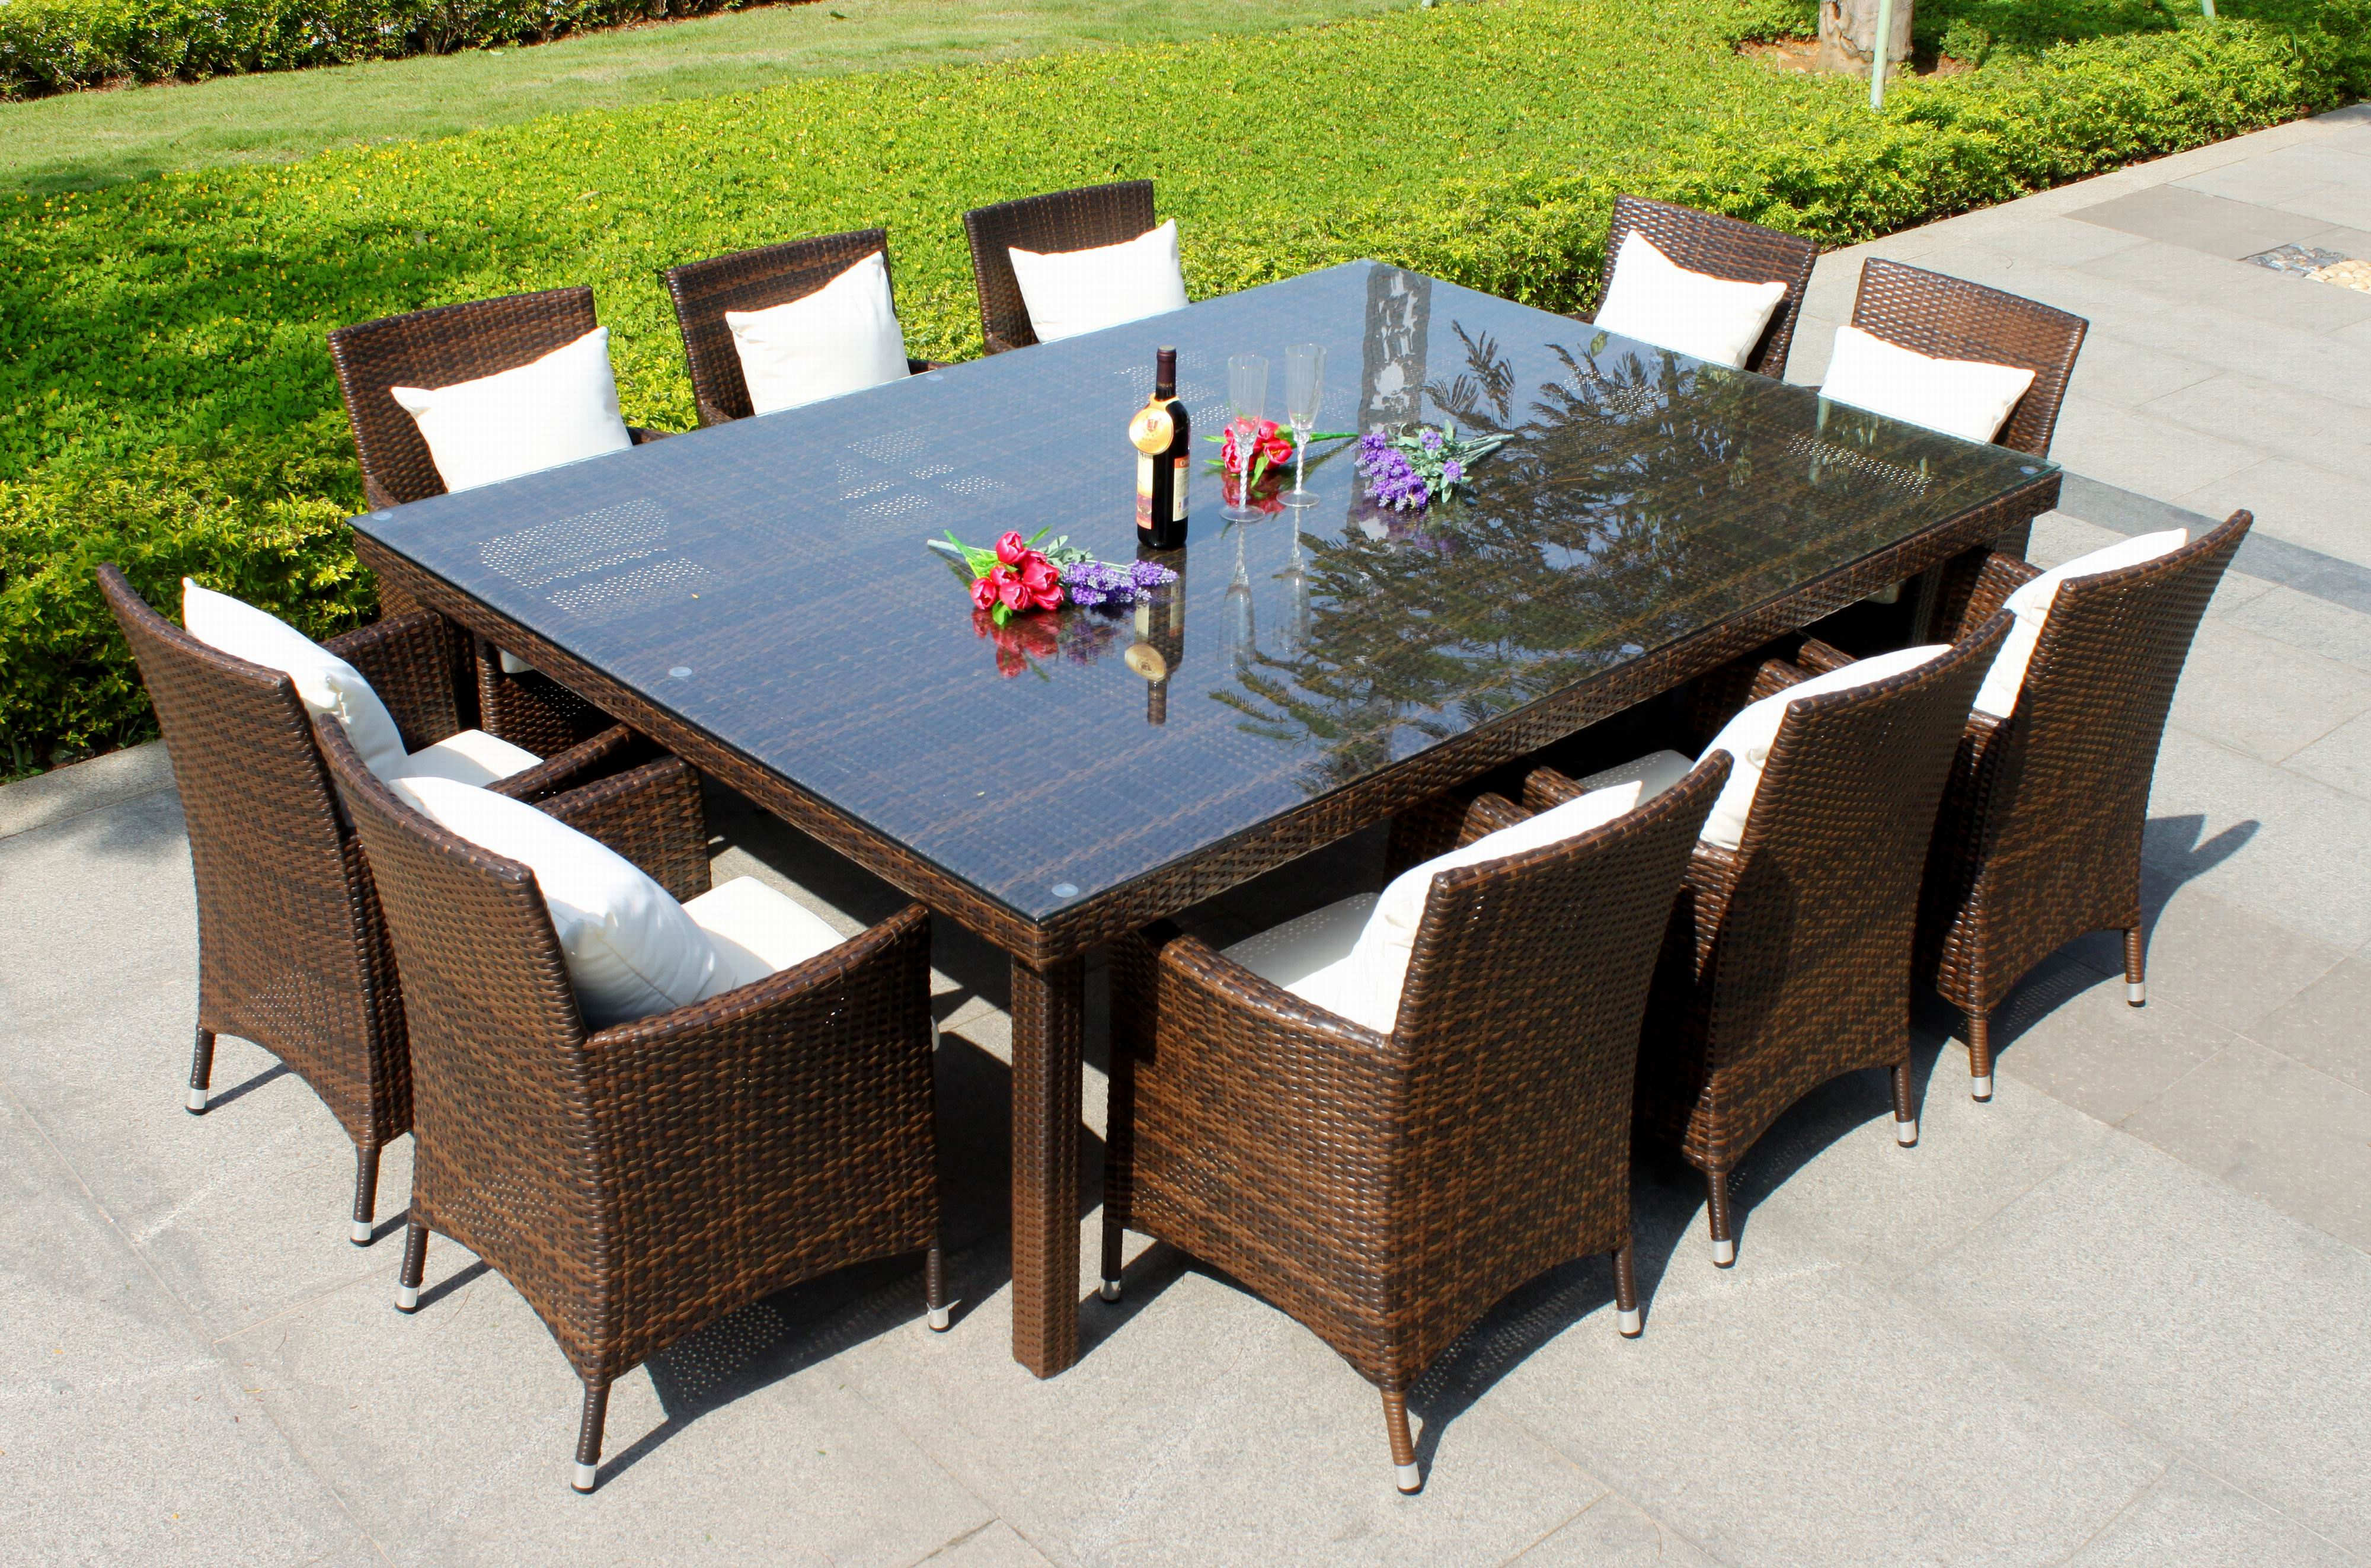 Outdoor Dining Outdoor Dining Set Hotel Furniture And Furnishings